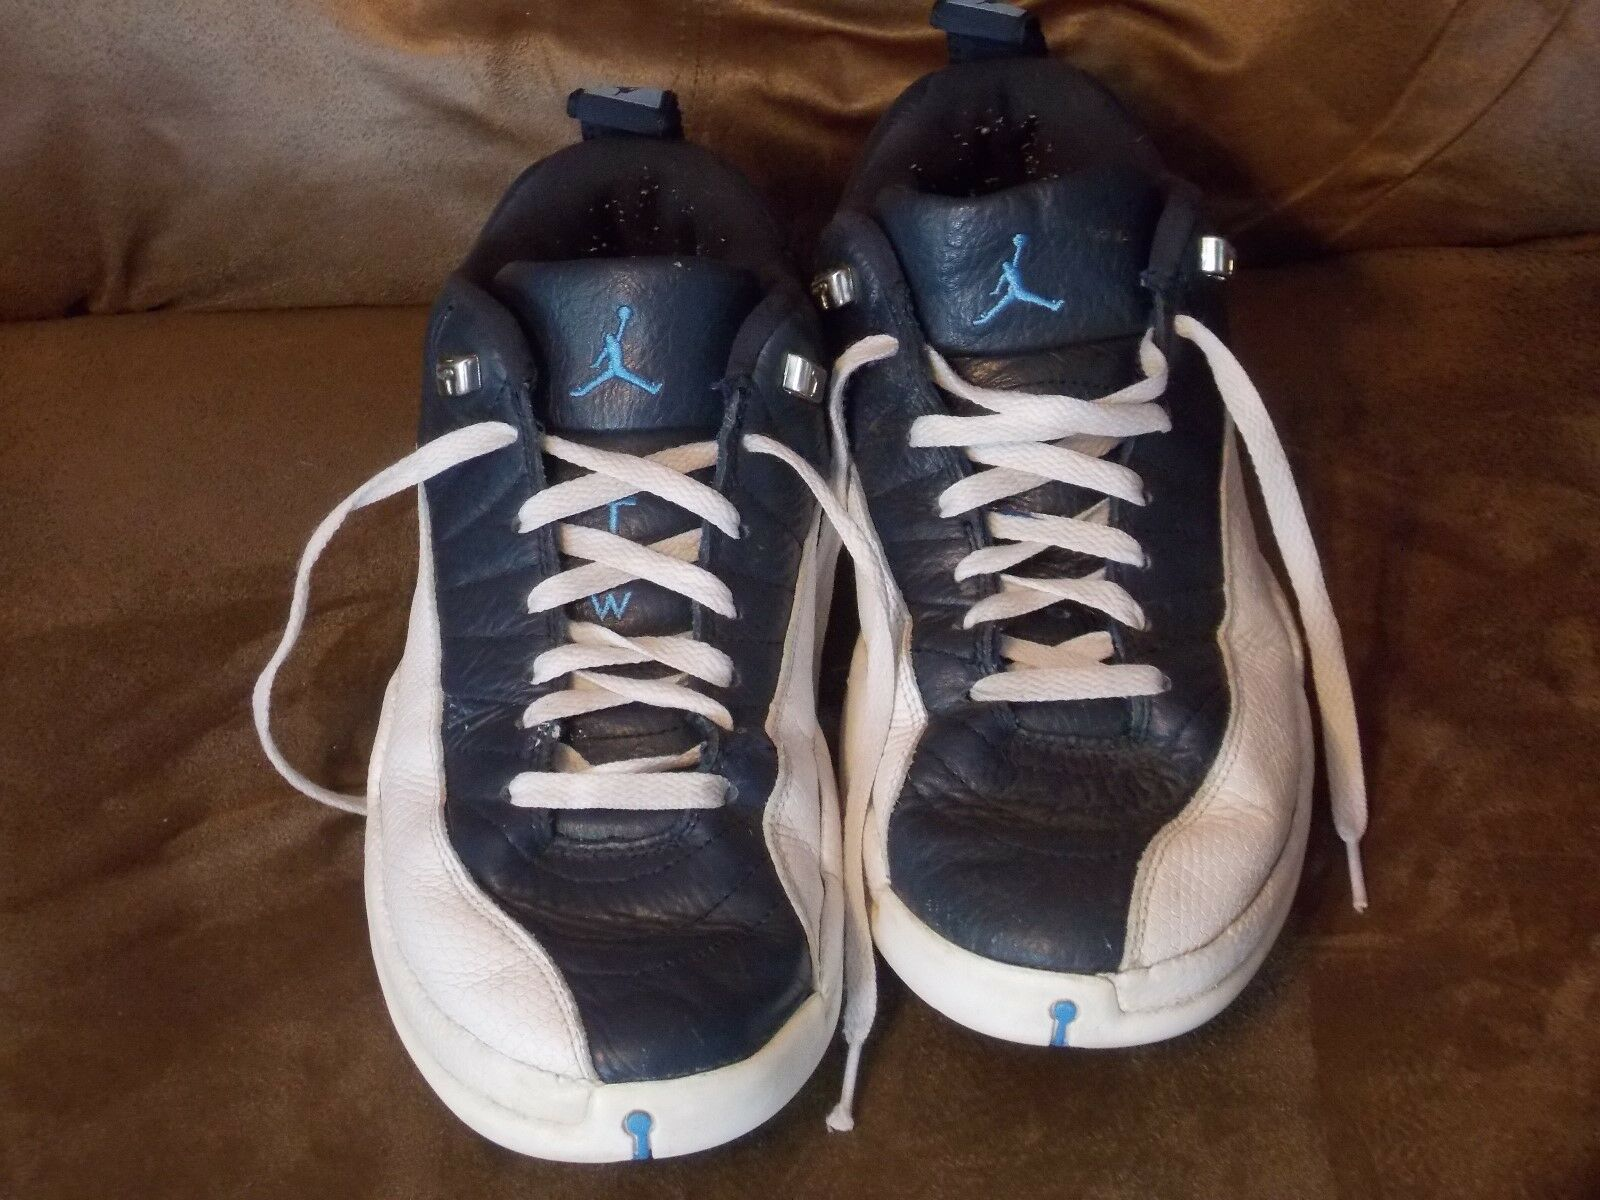 Nike air jordan jumpman two3 shoes size men's U.S. 10.5 Jordan TWO 3 see photos